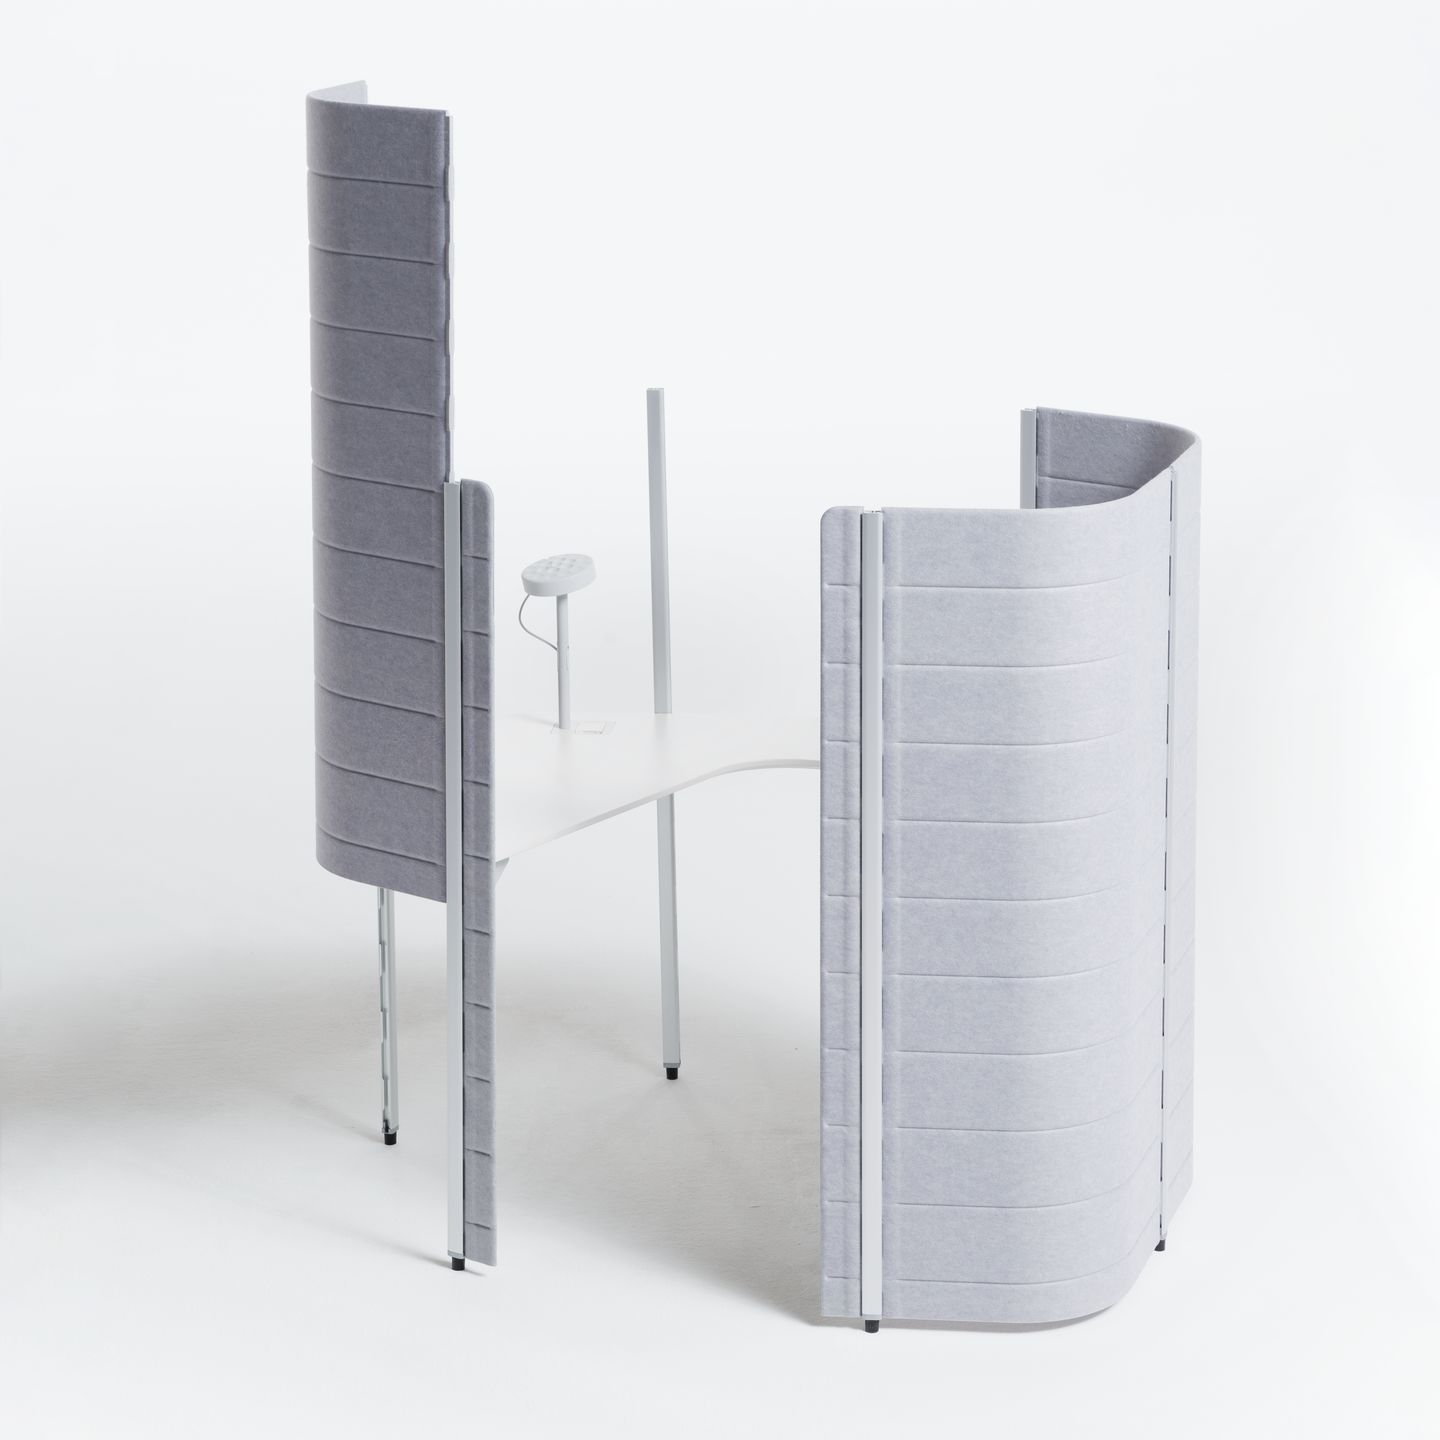 vitra citizen office. It Helps To Reduce Noise And Gives The Office Furniture System An Inviting Visual Look Appealing Textile Feel. Slender In Appearance Yet Remarkably Vitra Citizen